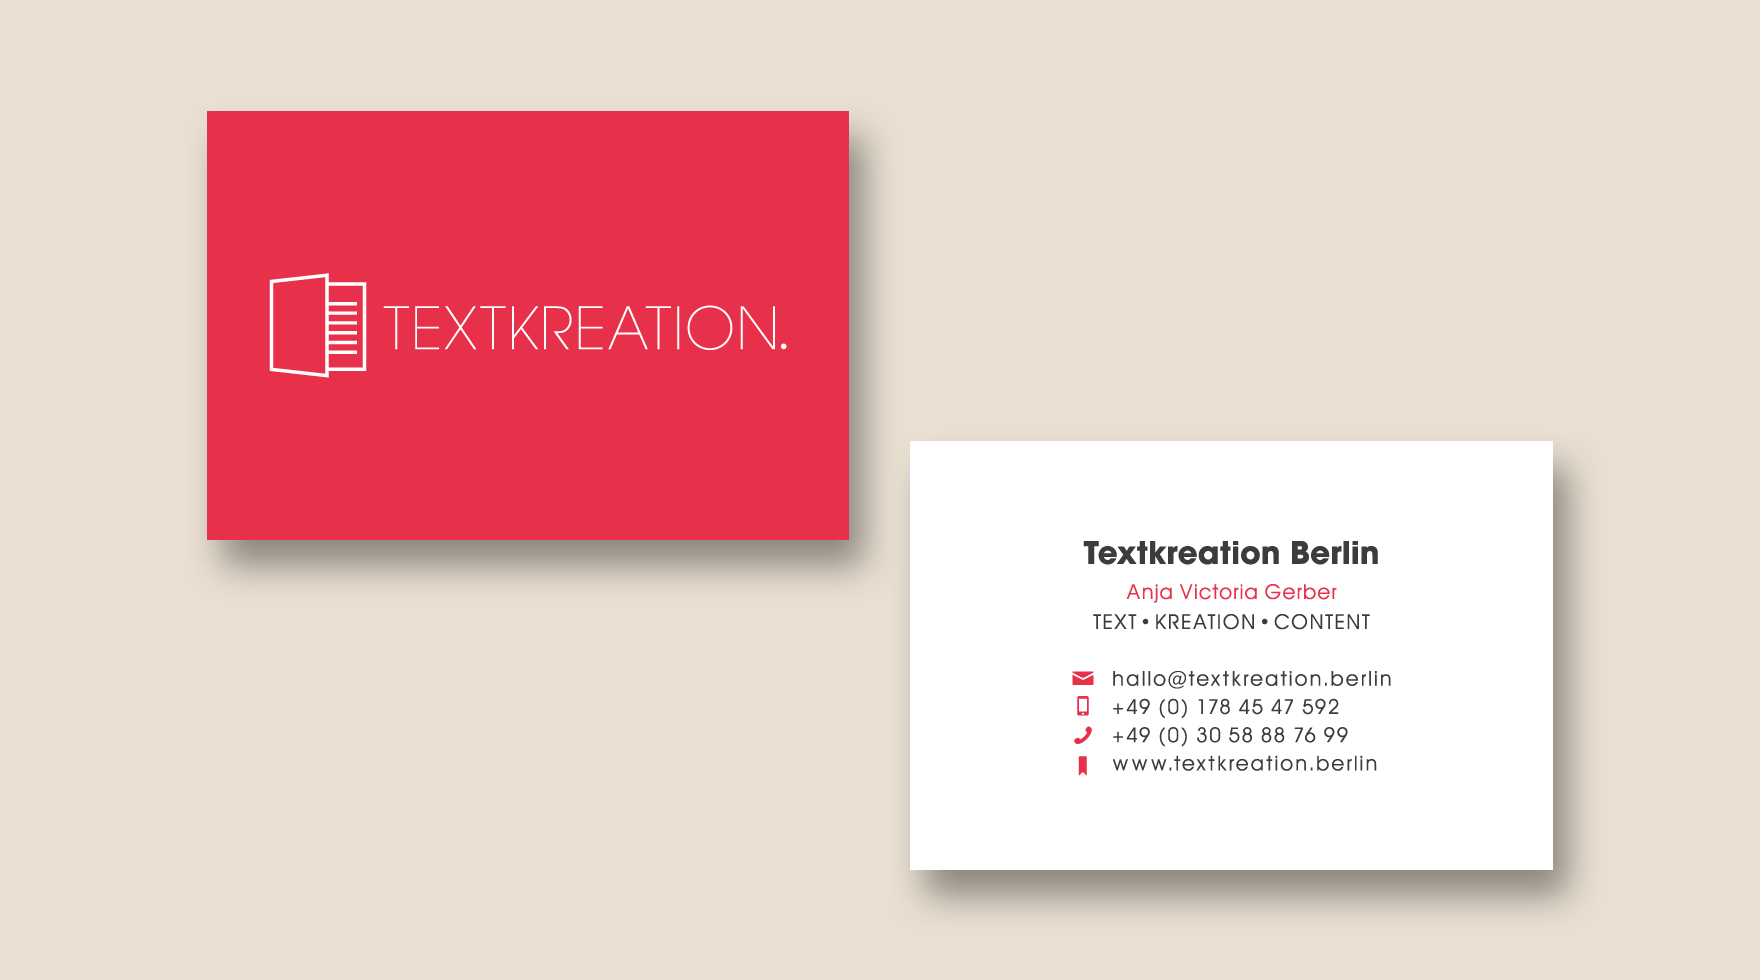 businesscard-design-textkreation-berlin-agency